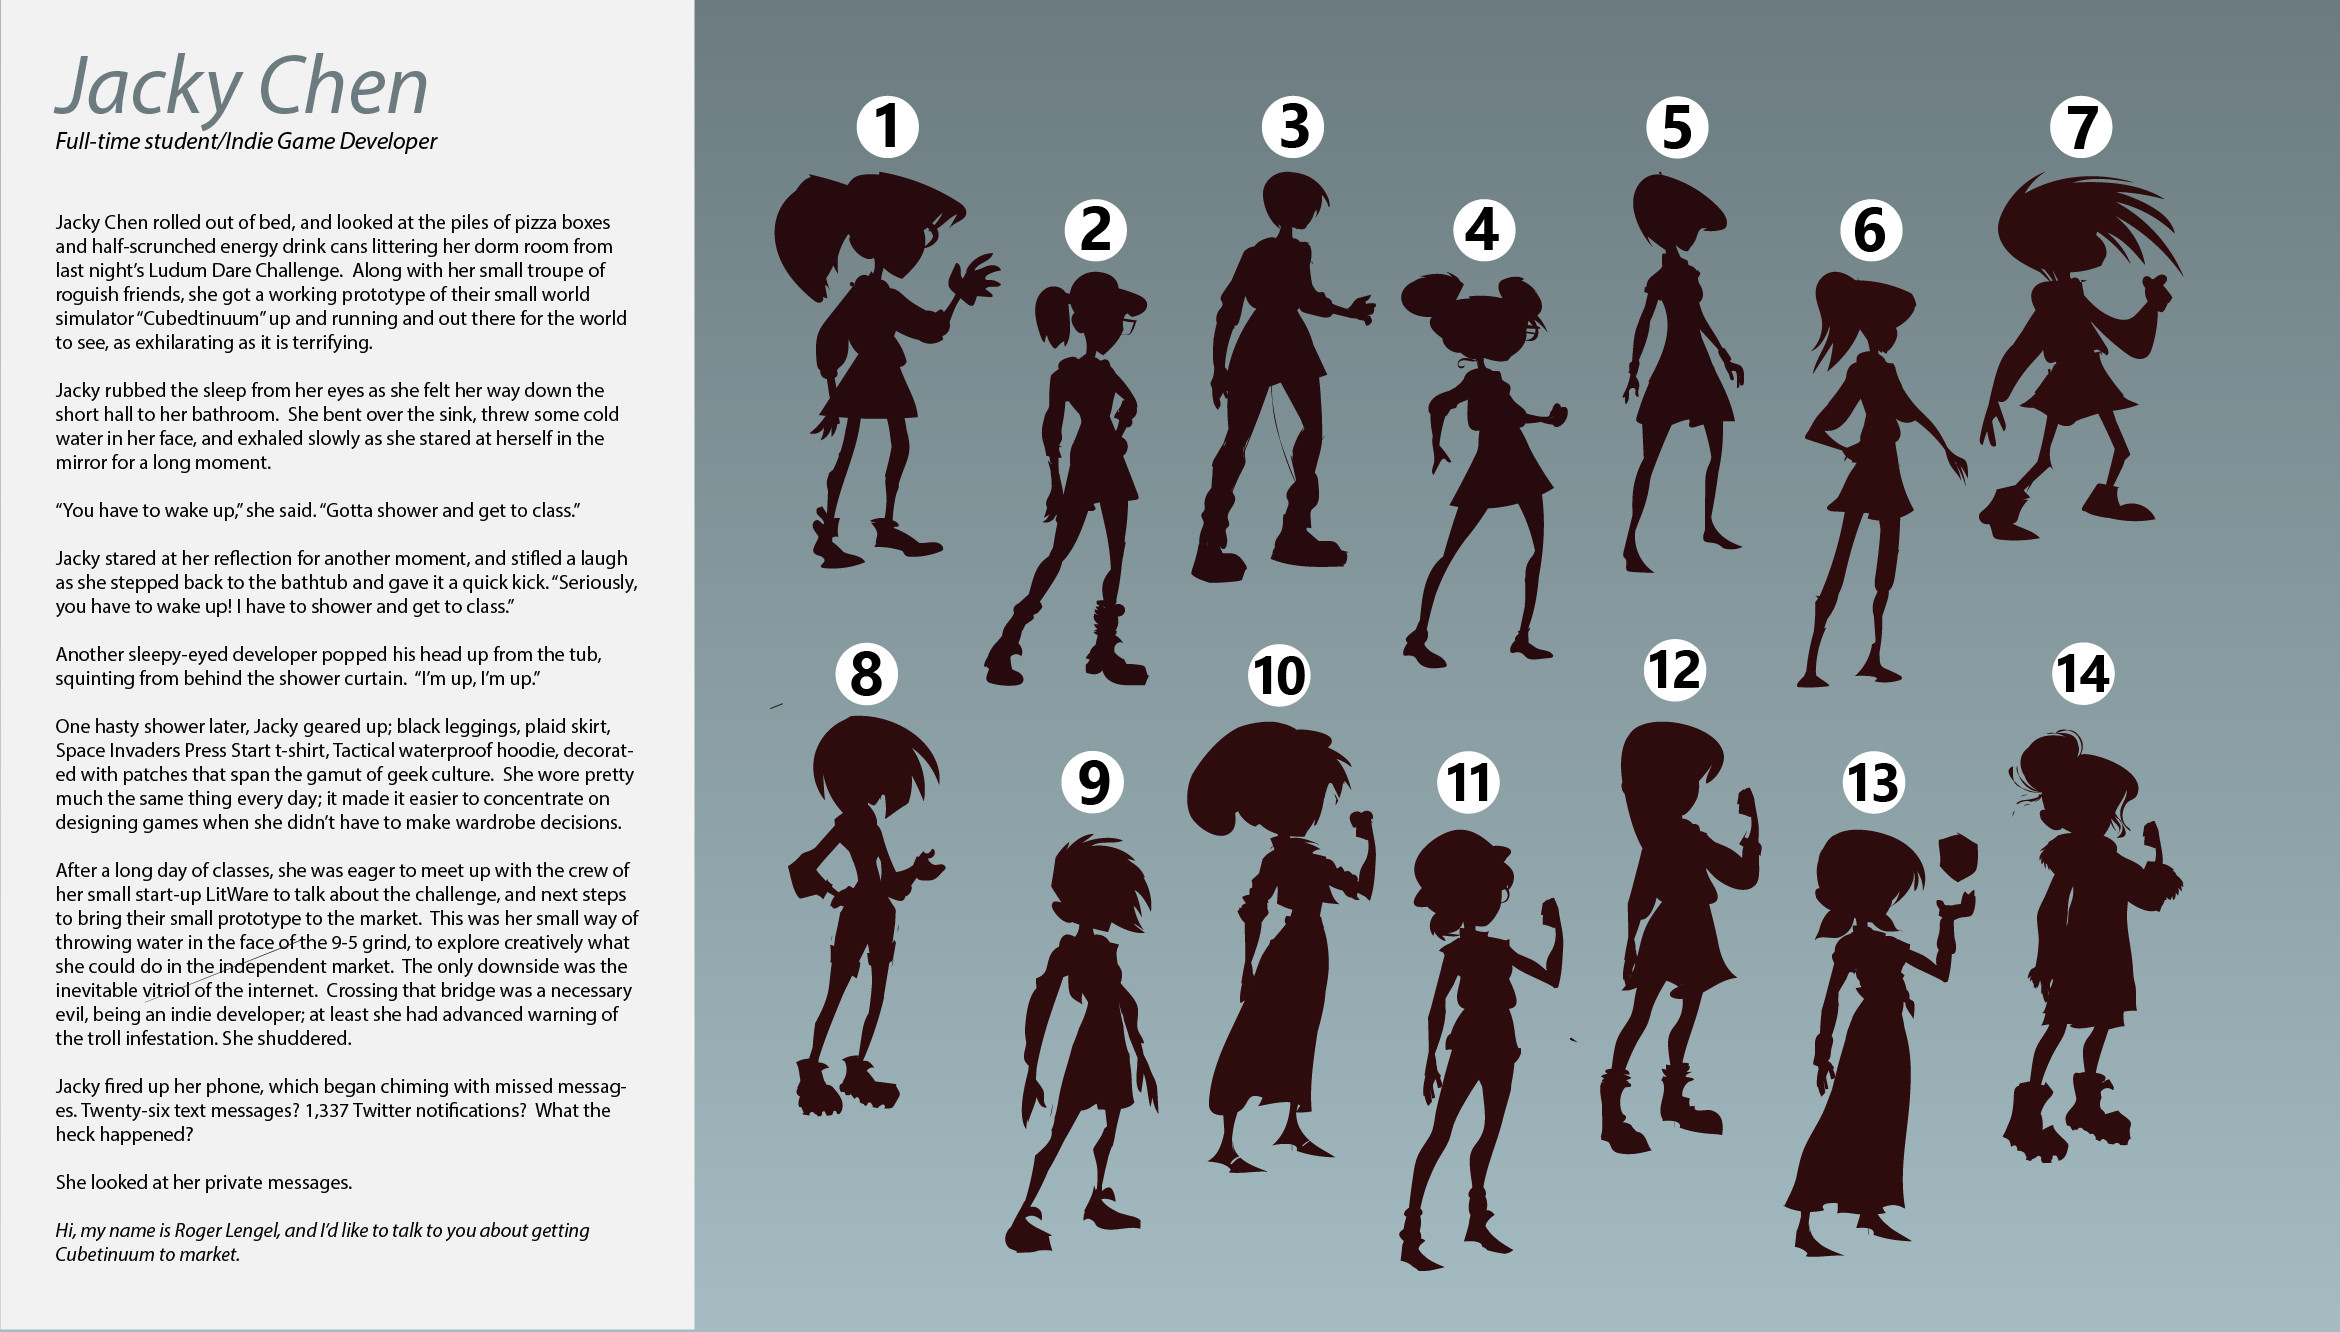 Character write up and silhouette explorations for Indie Game Developer